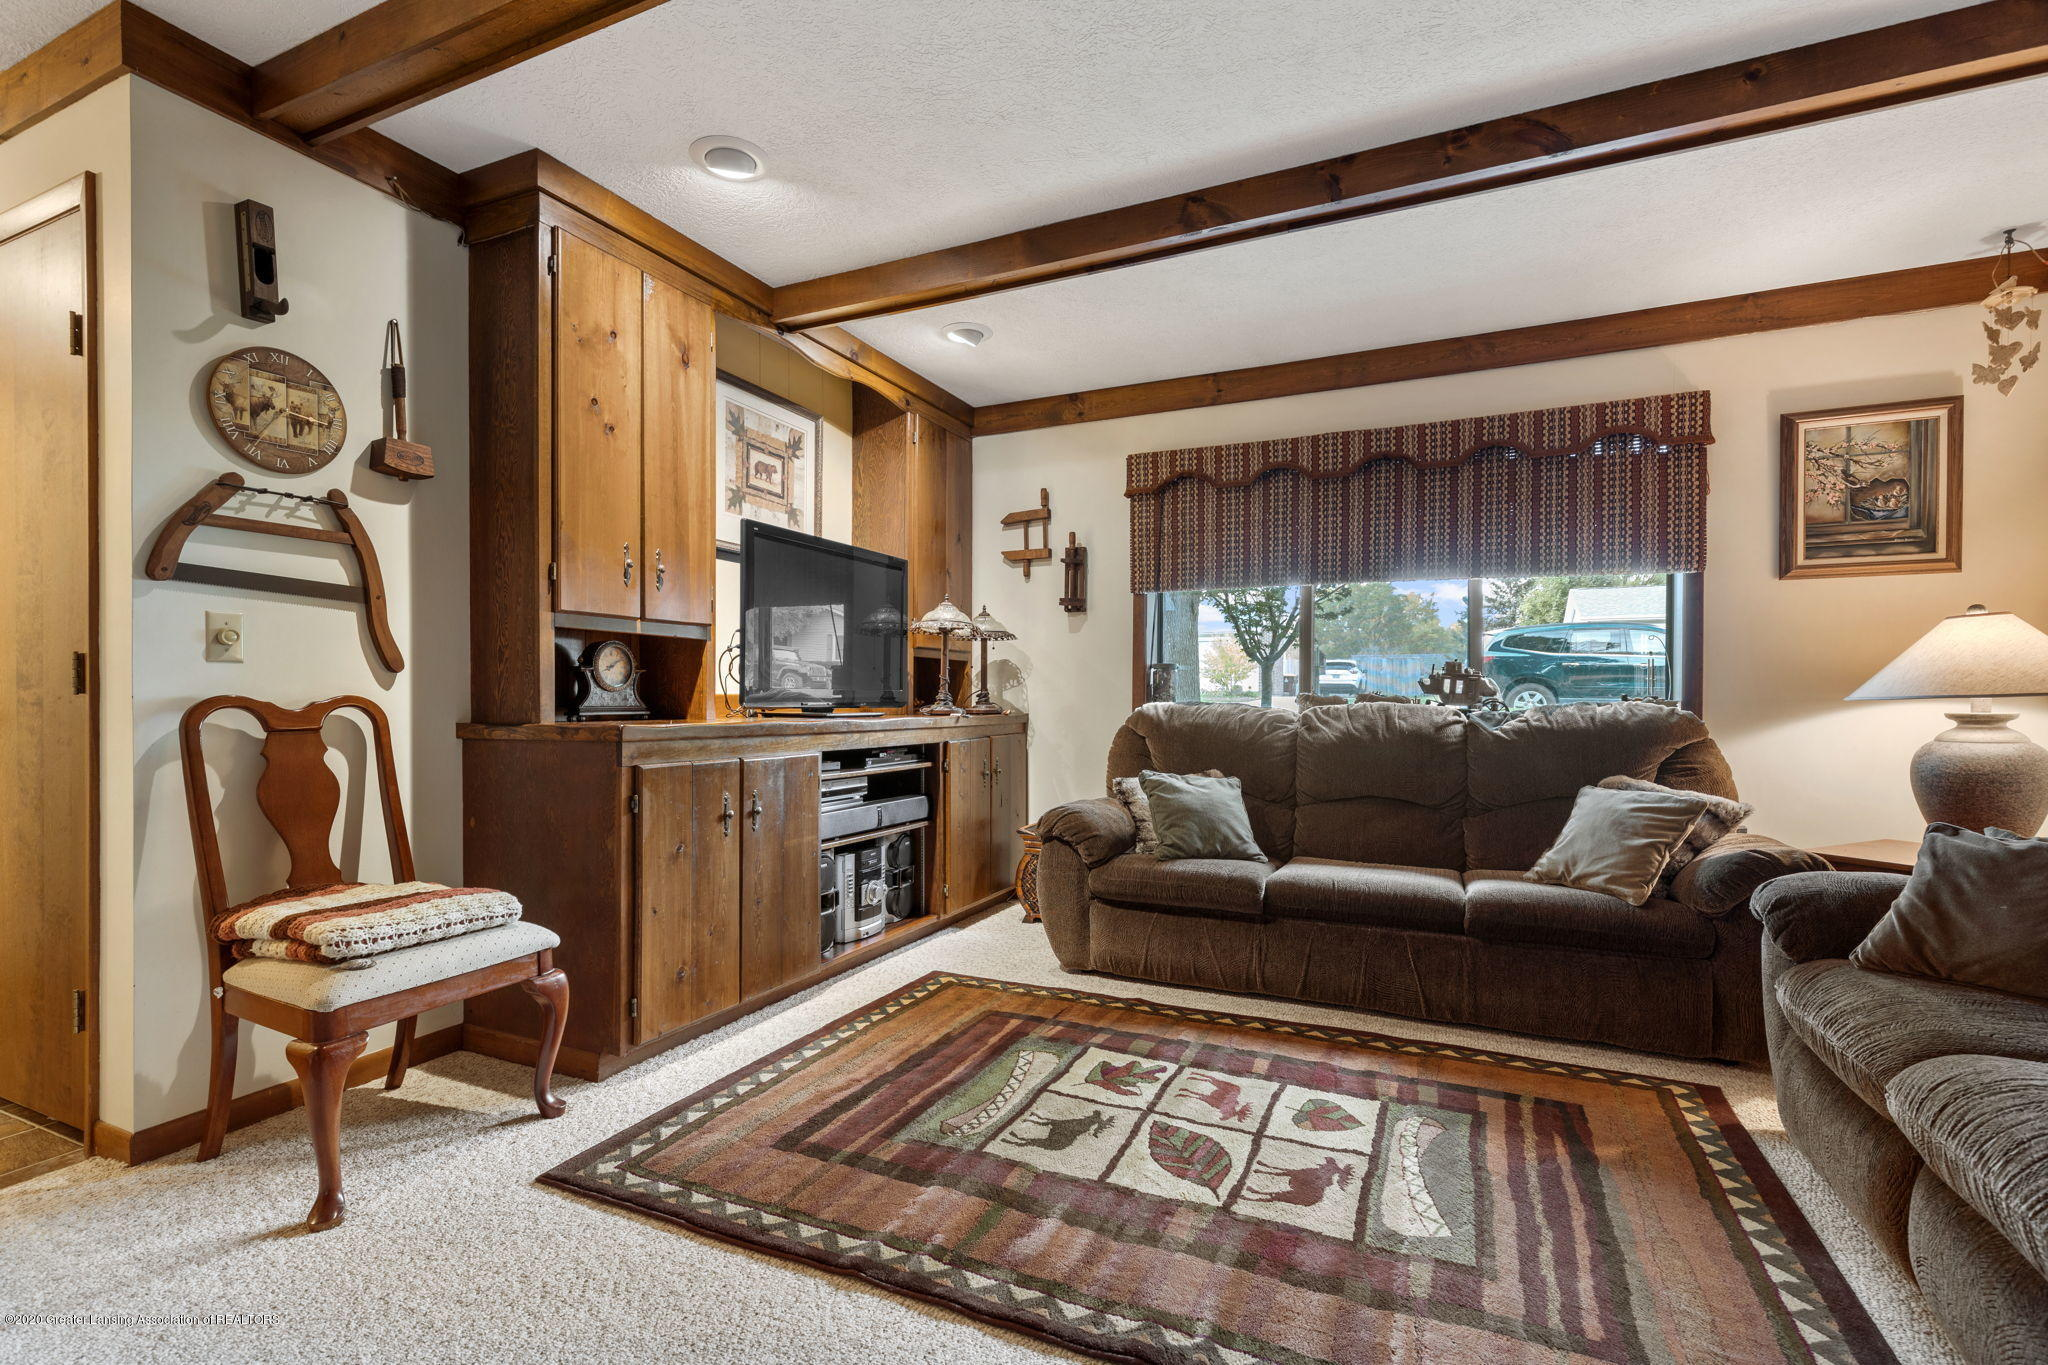 617 Green St - 20-web-or-mls-1P6A9465 - 10